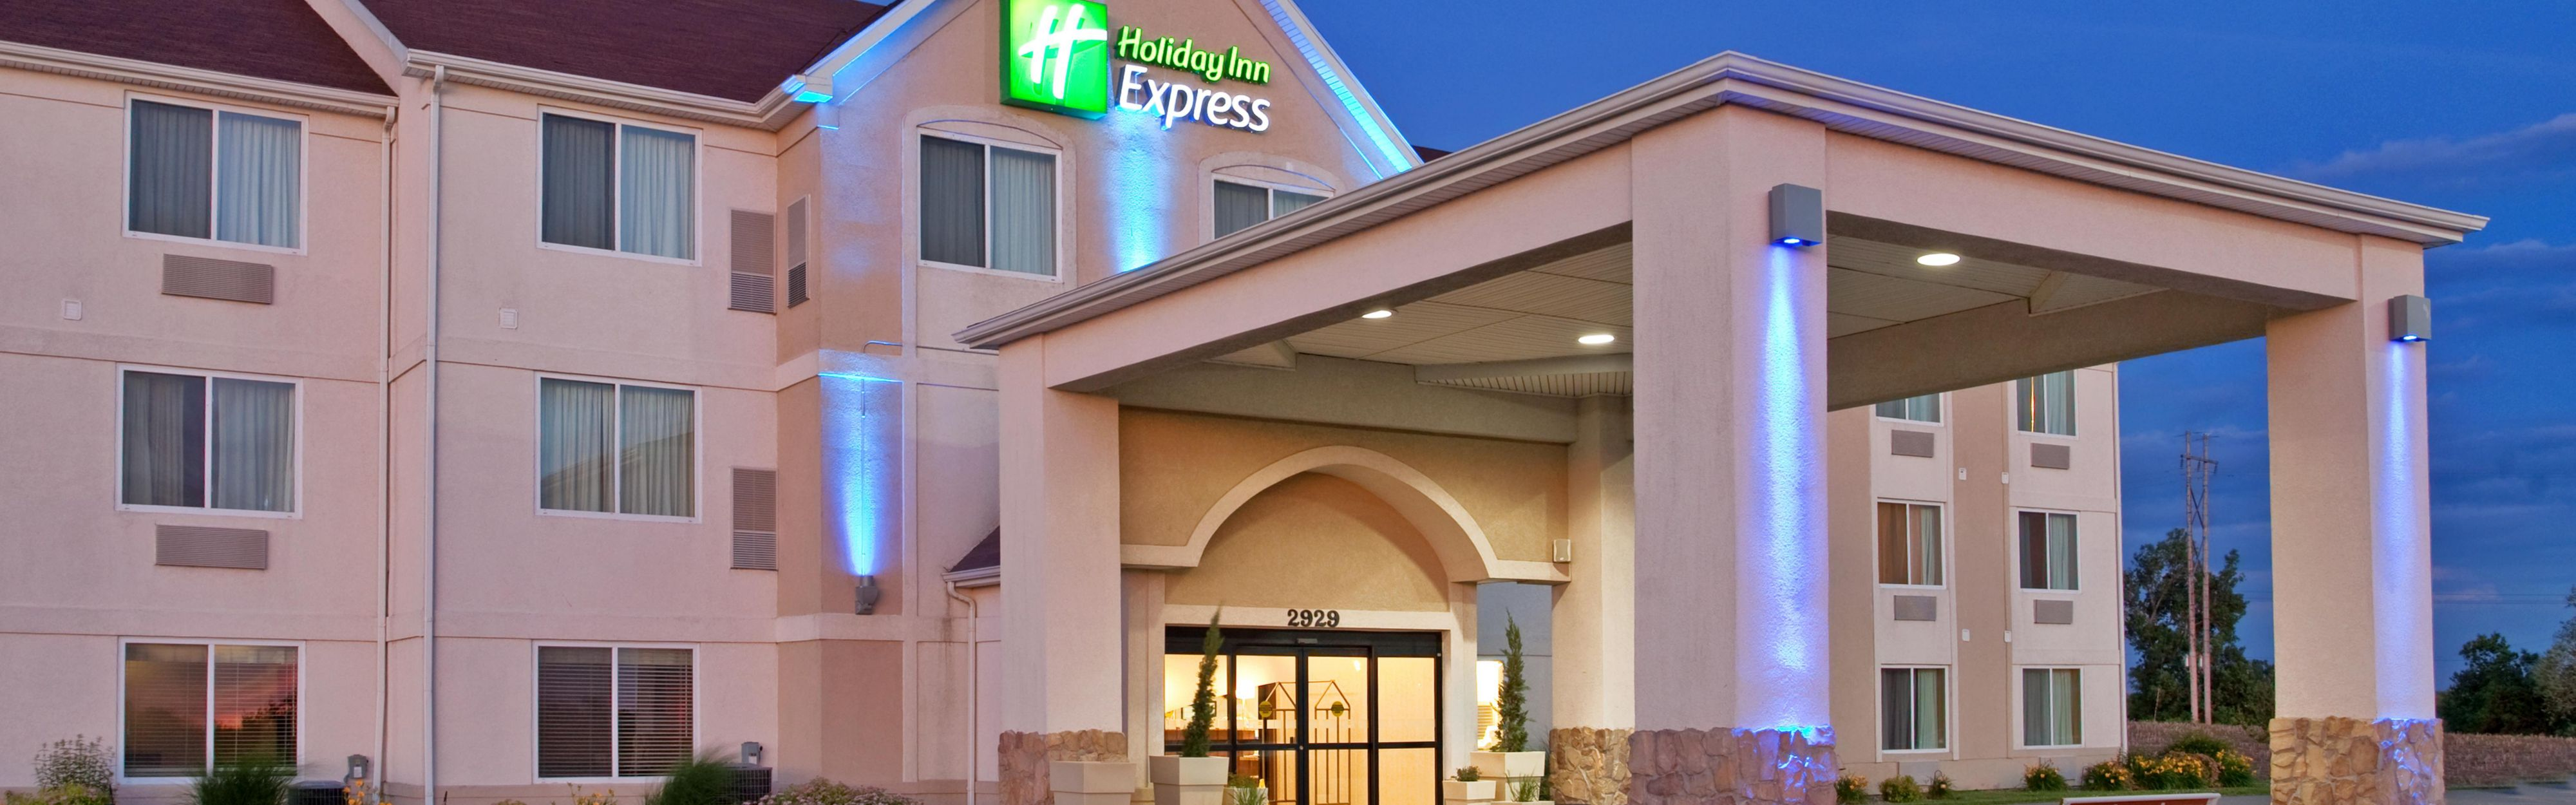 Holiday Inn Express & Suites Maryville image 0